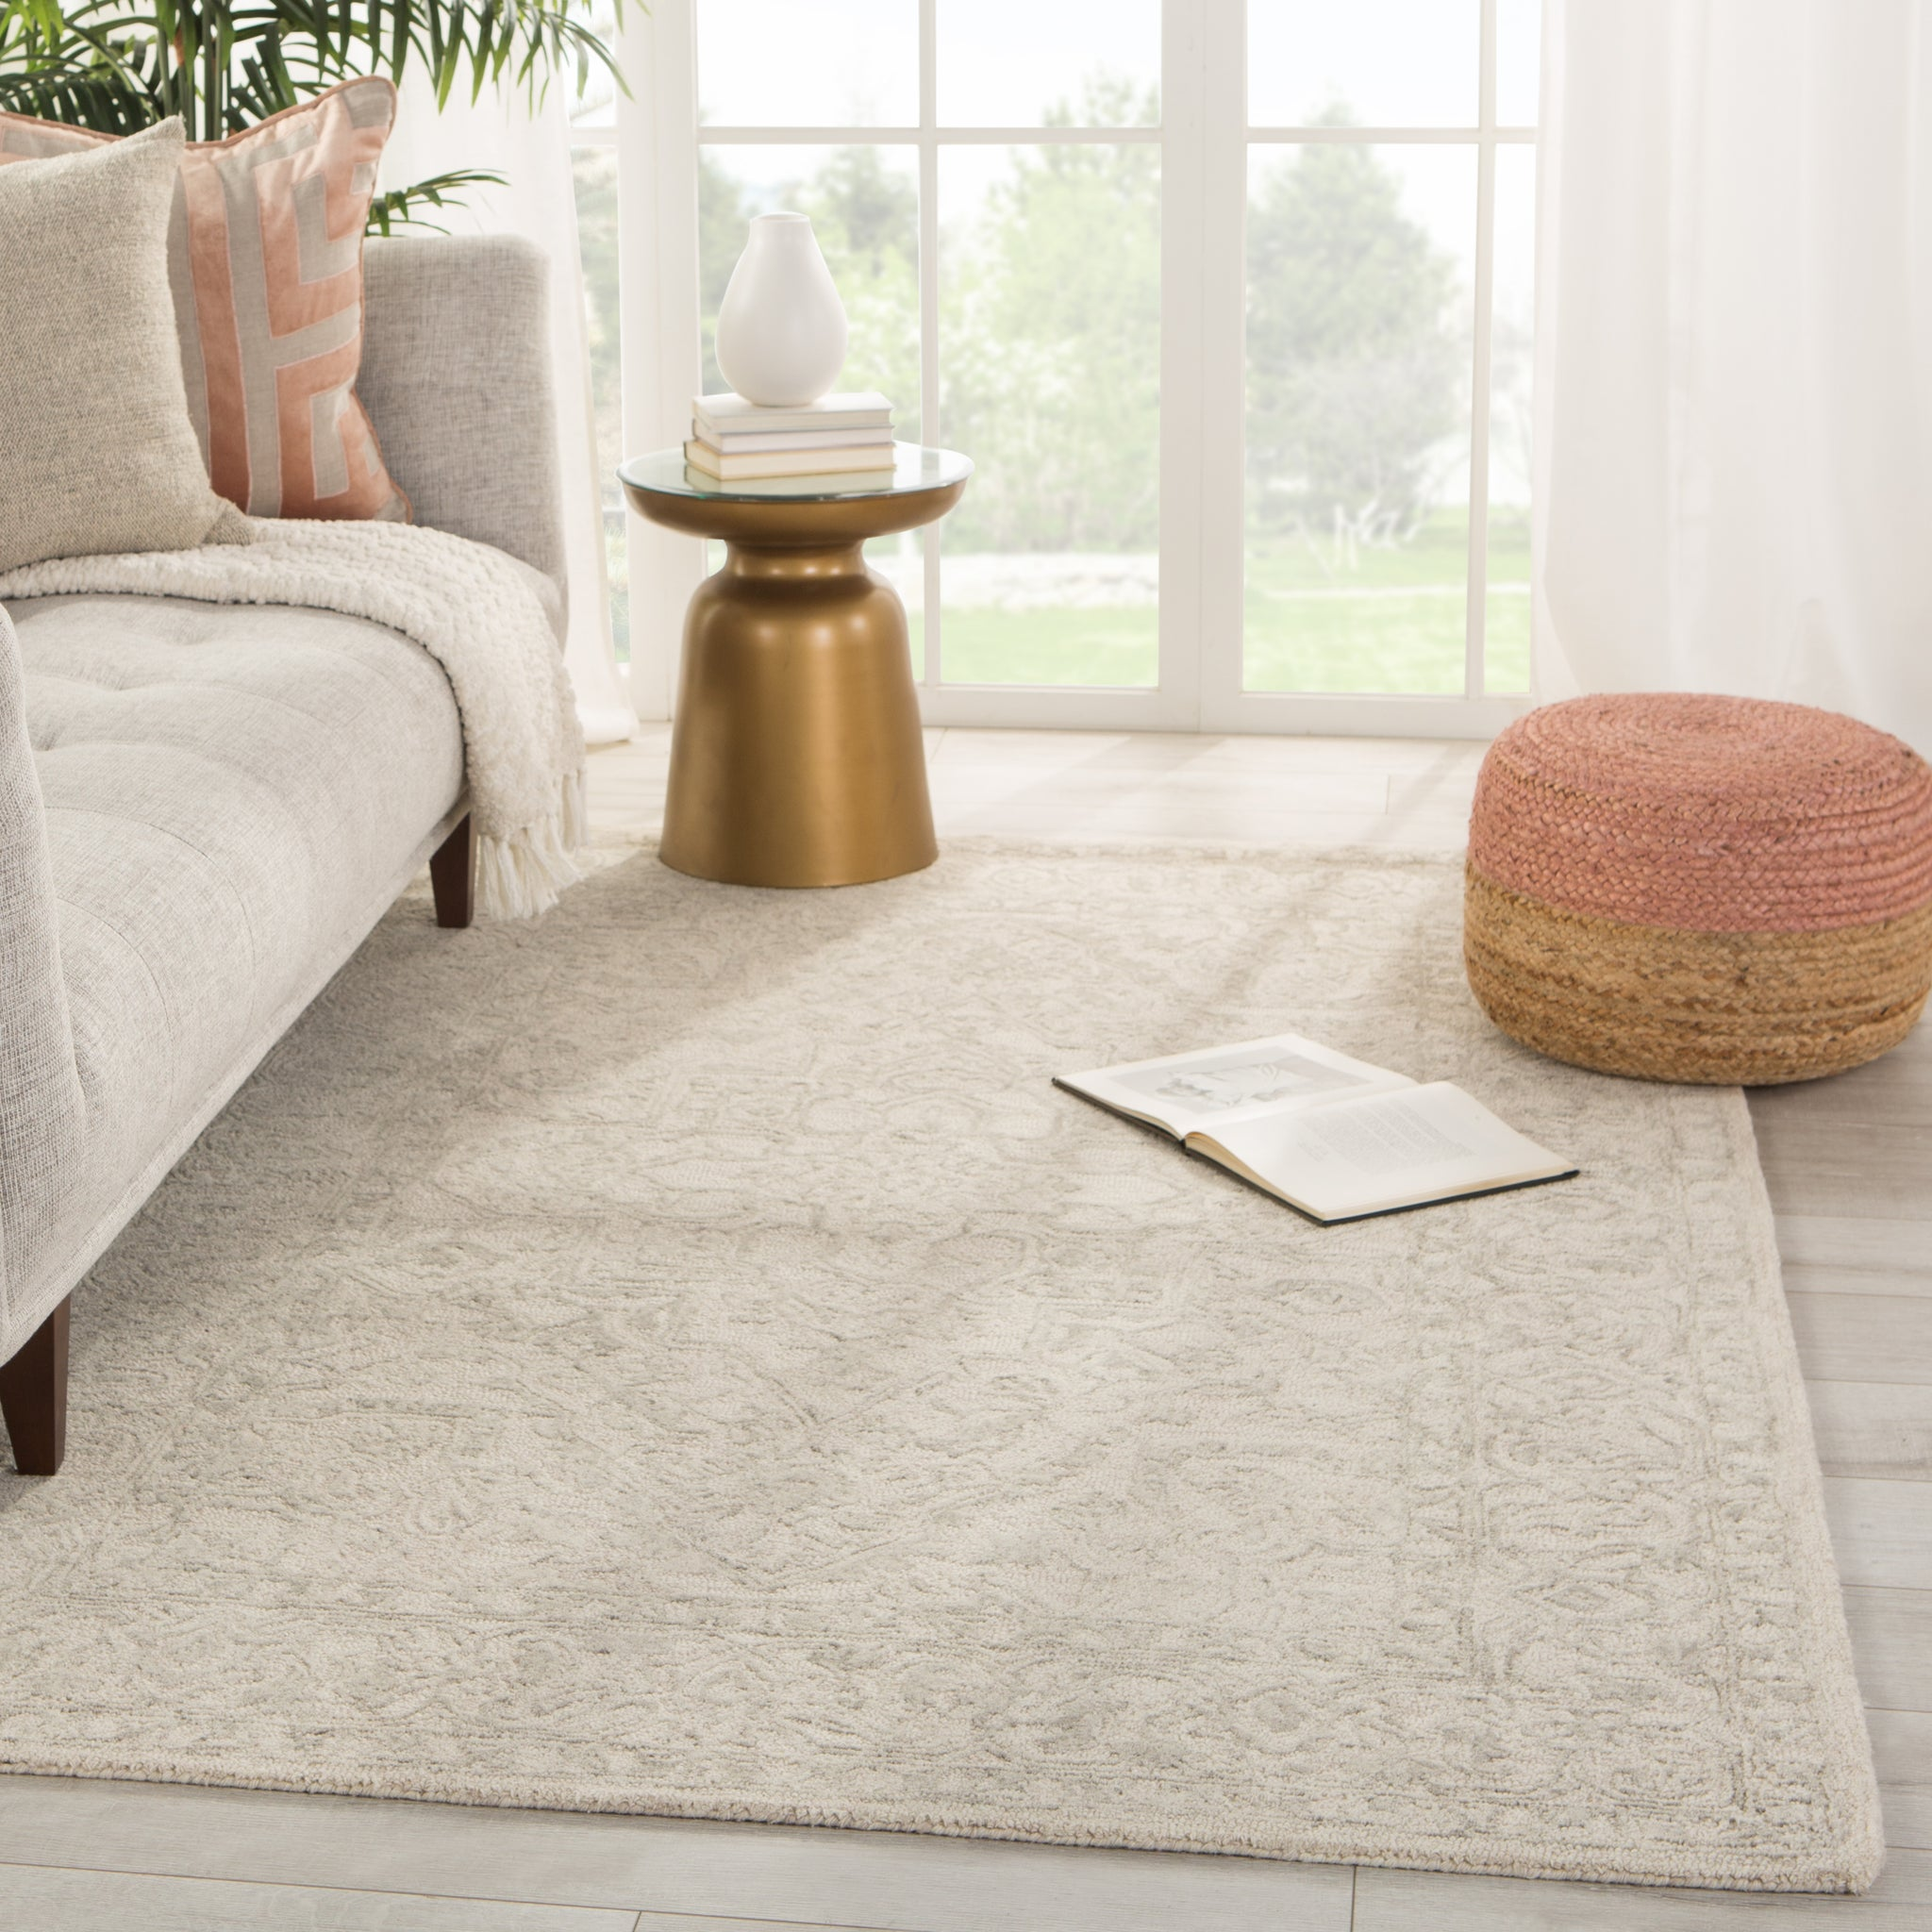 Lena Handmade Medallion Light Gray Cream Rug Burke Decor